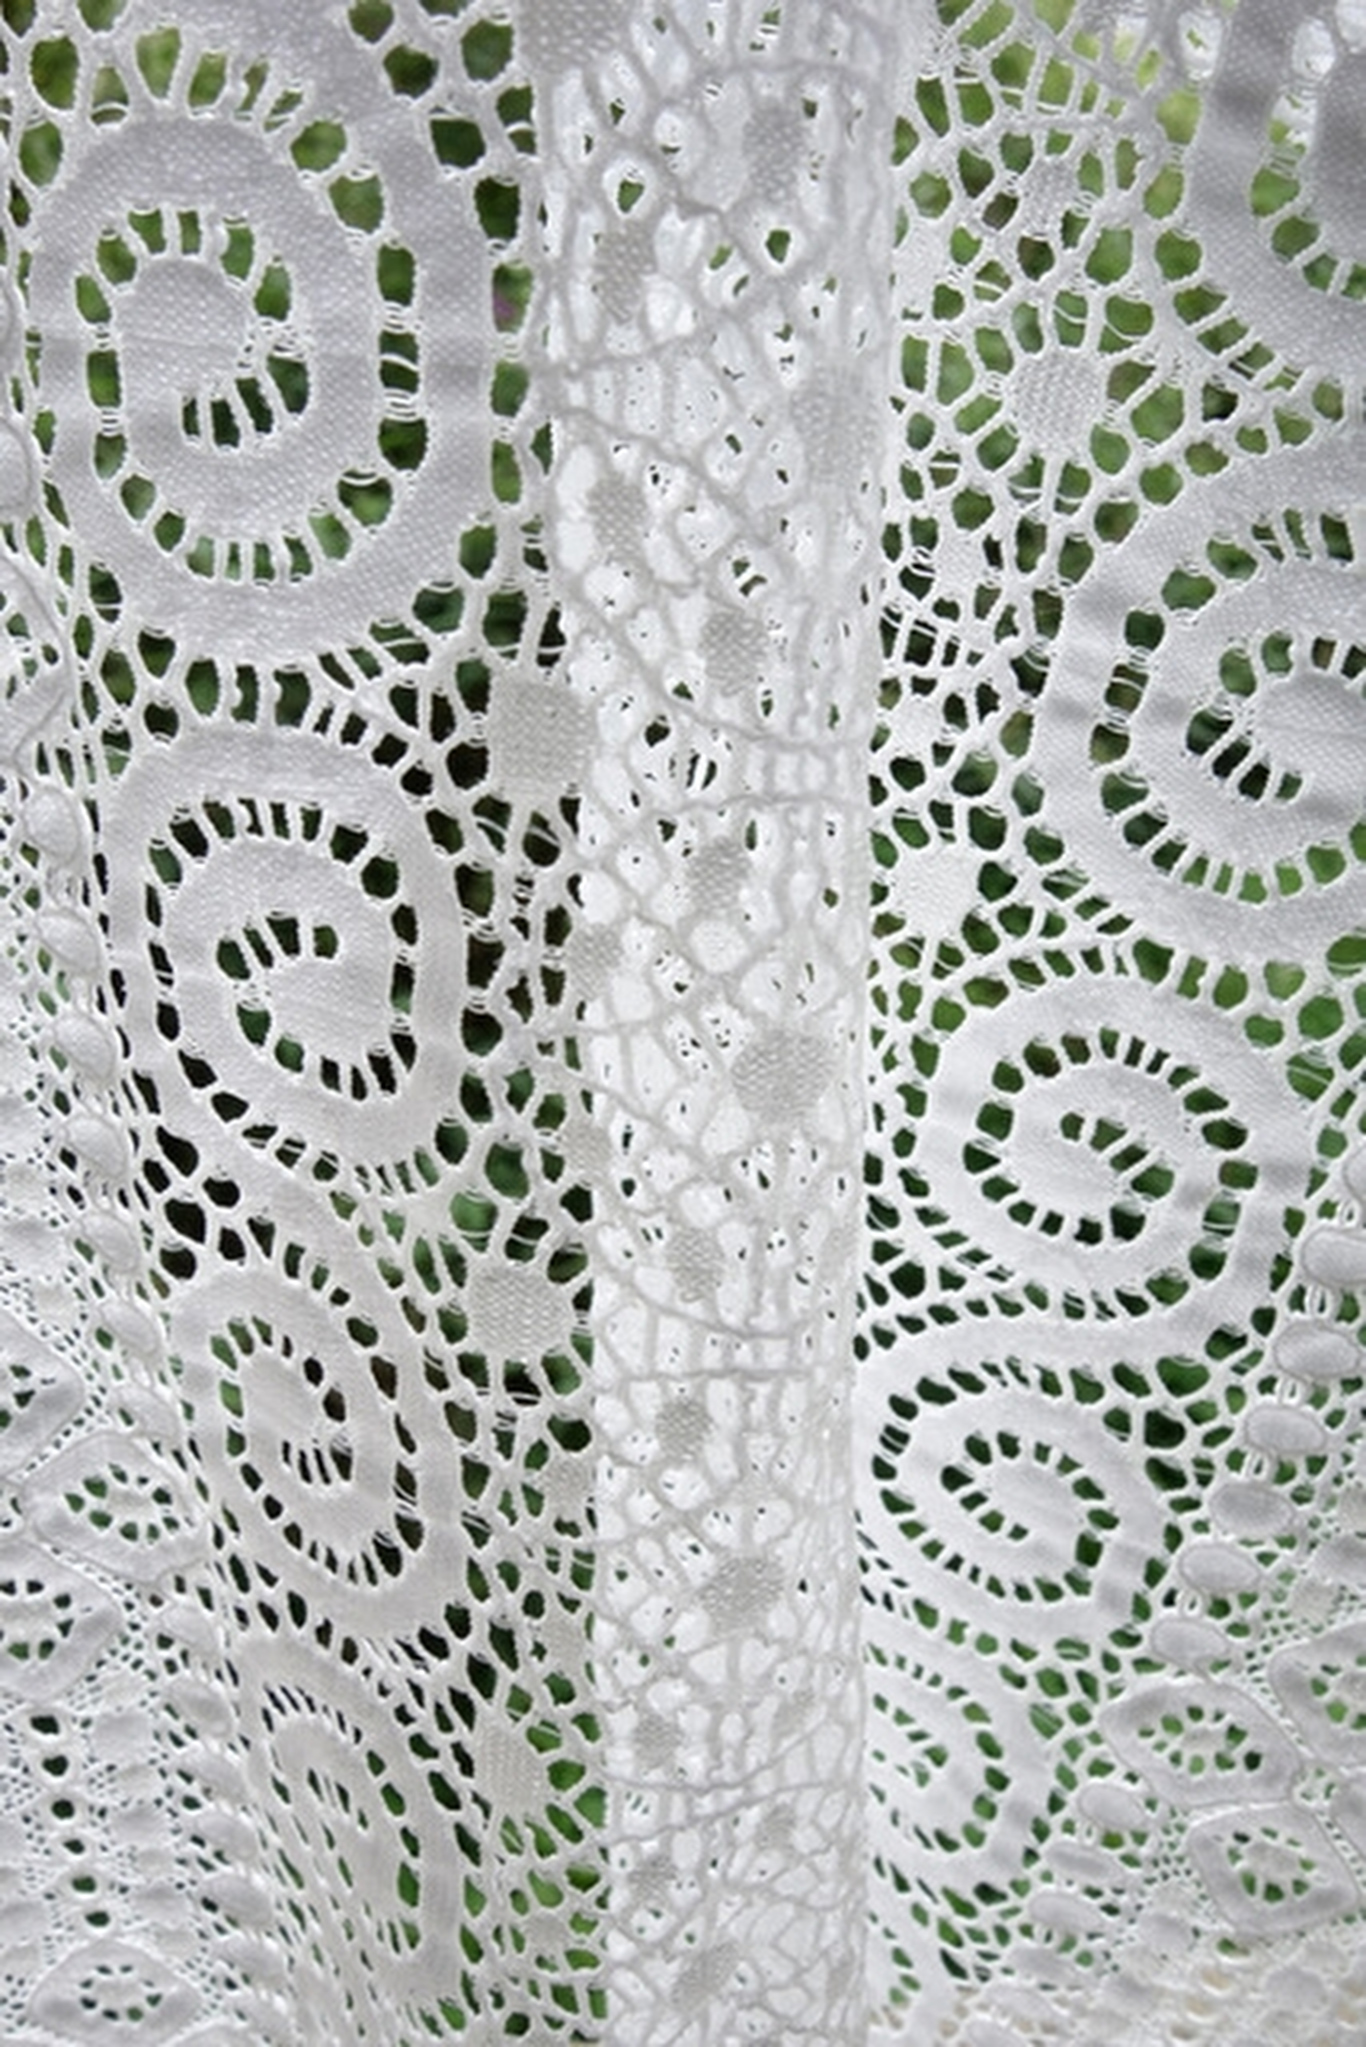 Noyon's sustainable lace was among the developments at Interfilière this year